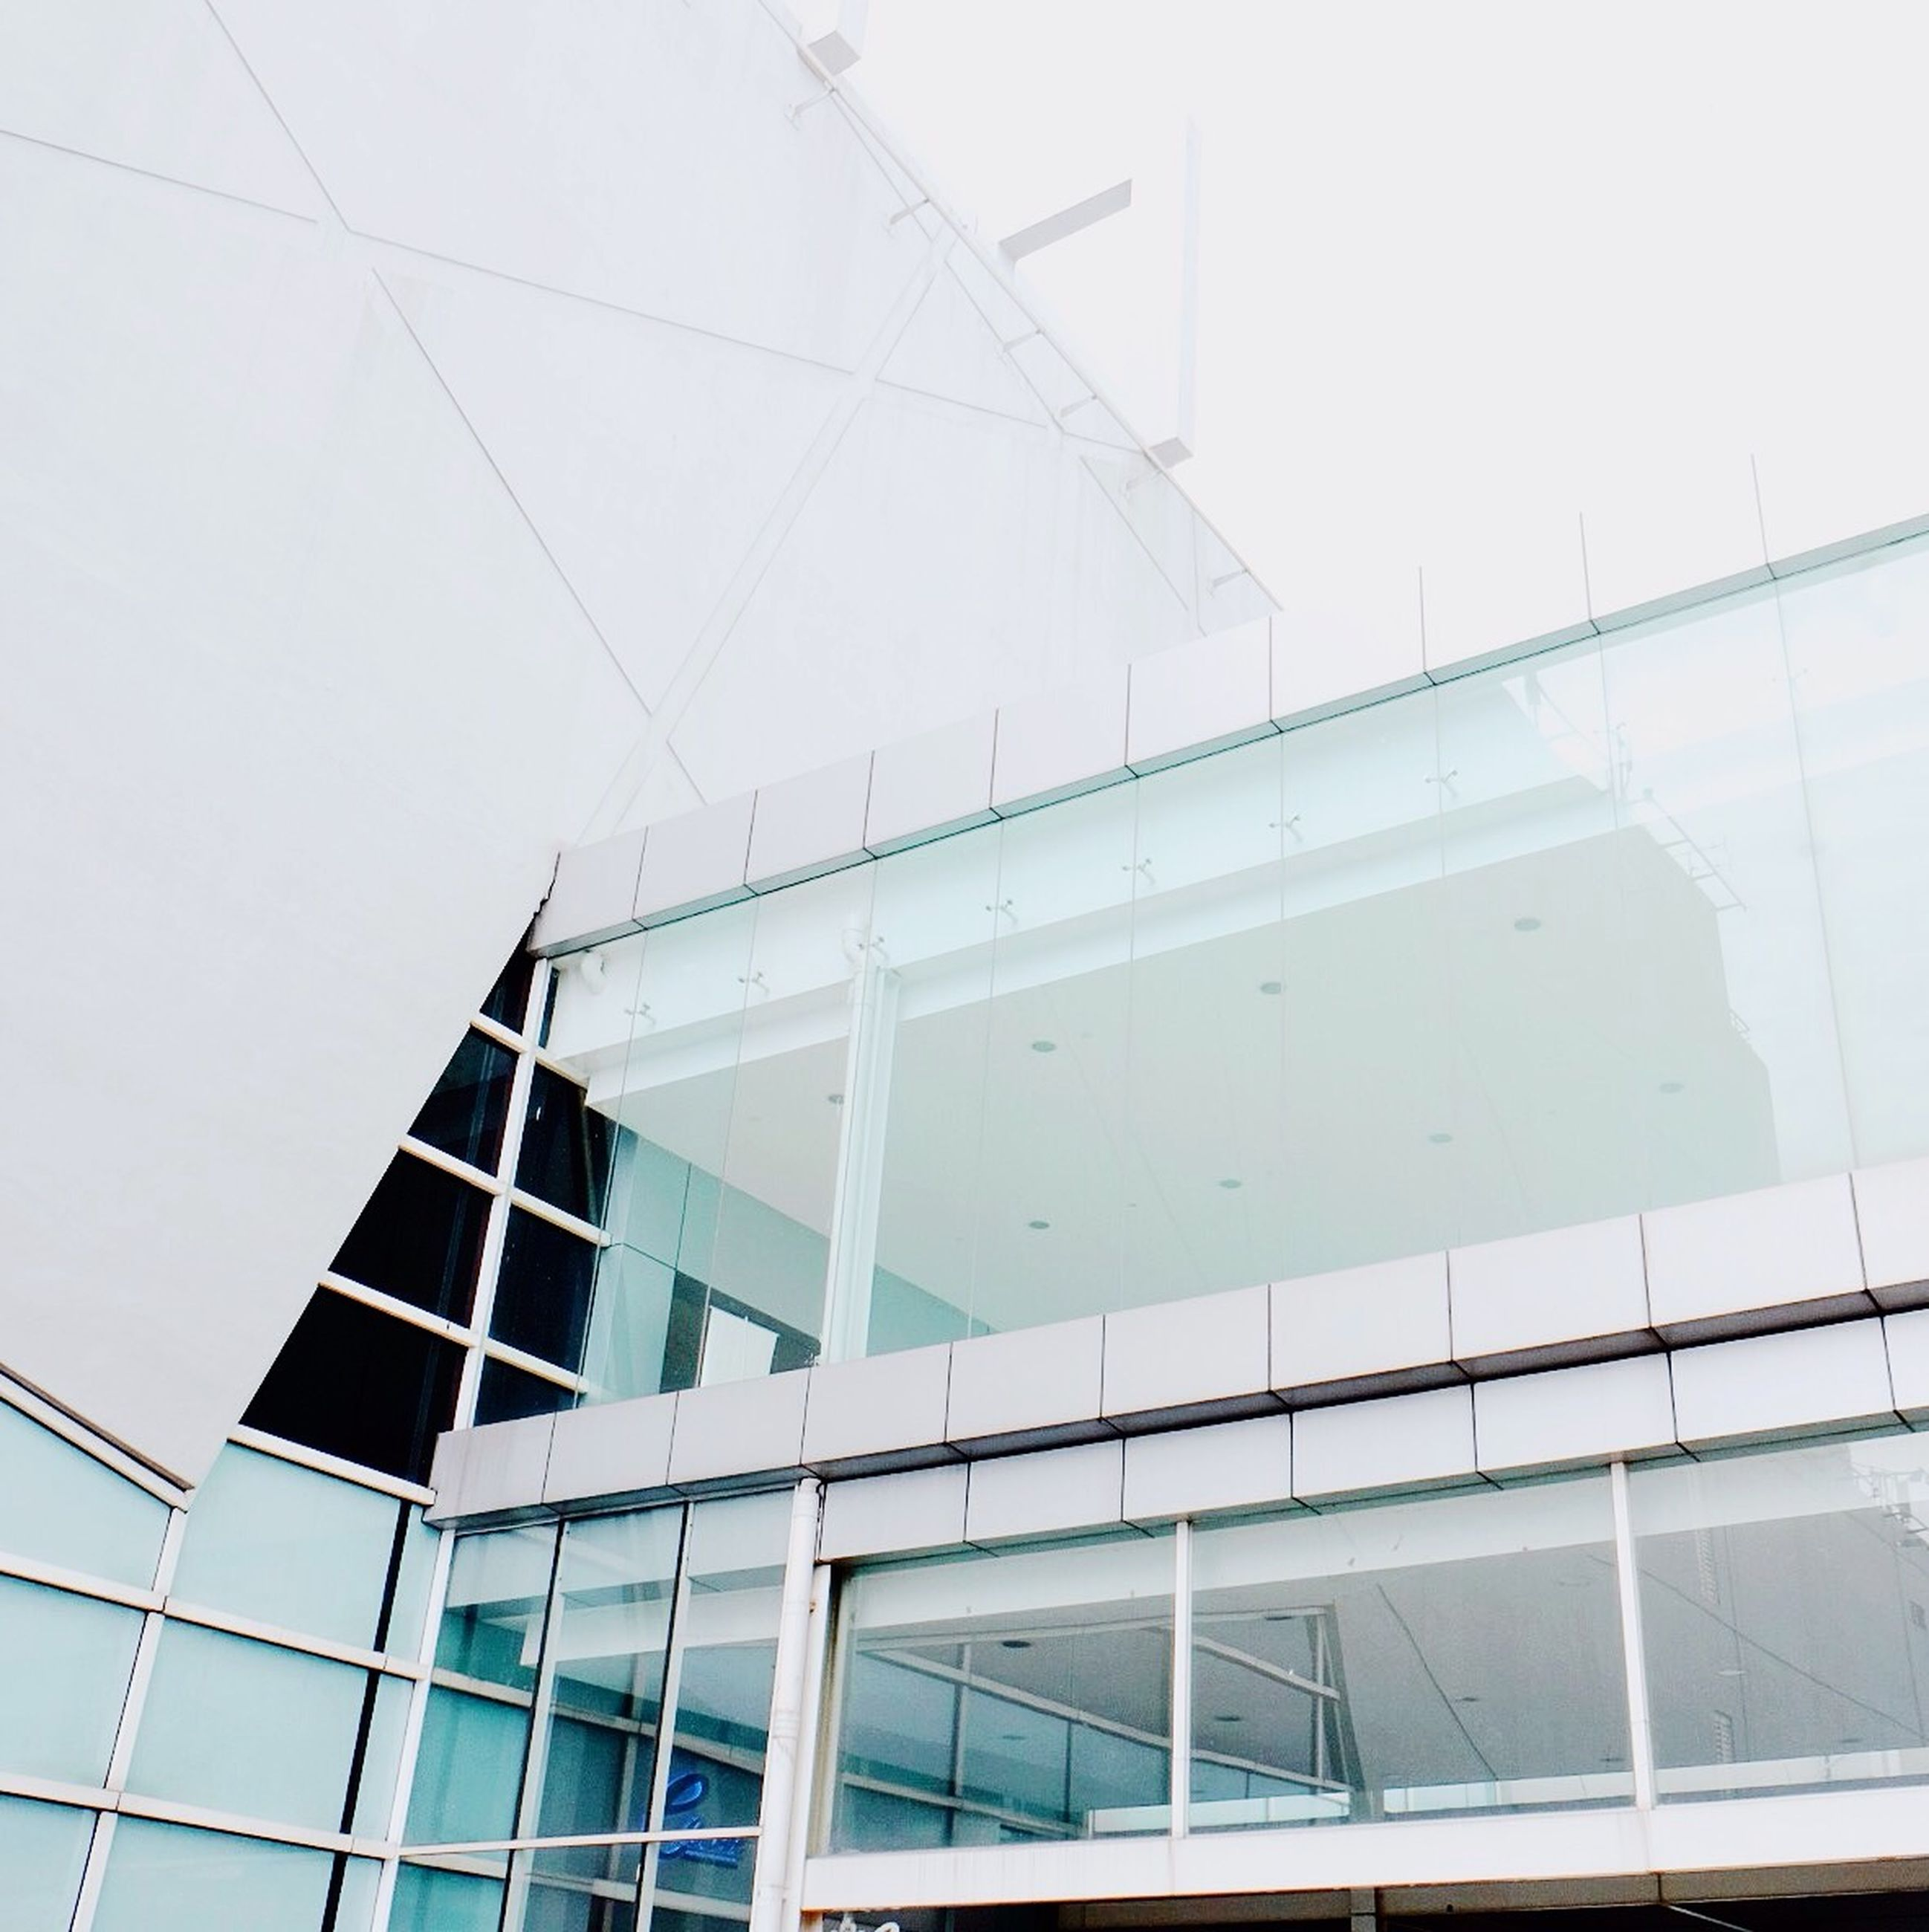 architecture, built structure, building exterior, low angle view, modern, glass - material, reflection, office building, building, window, city, day, glass, skyscraper, no people, sky, outdoors, geometric shape, clear sky, tall - high